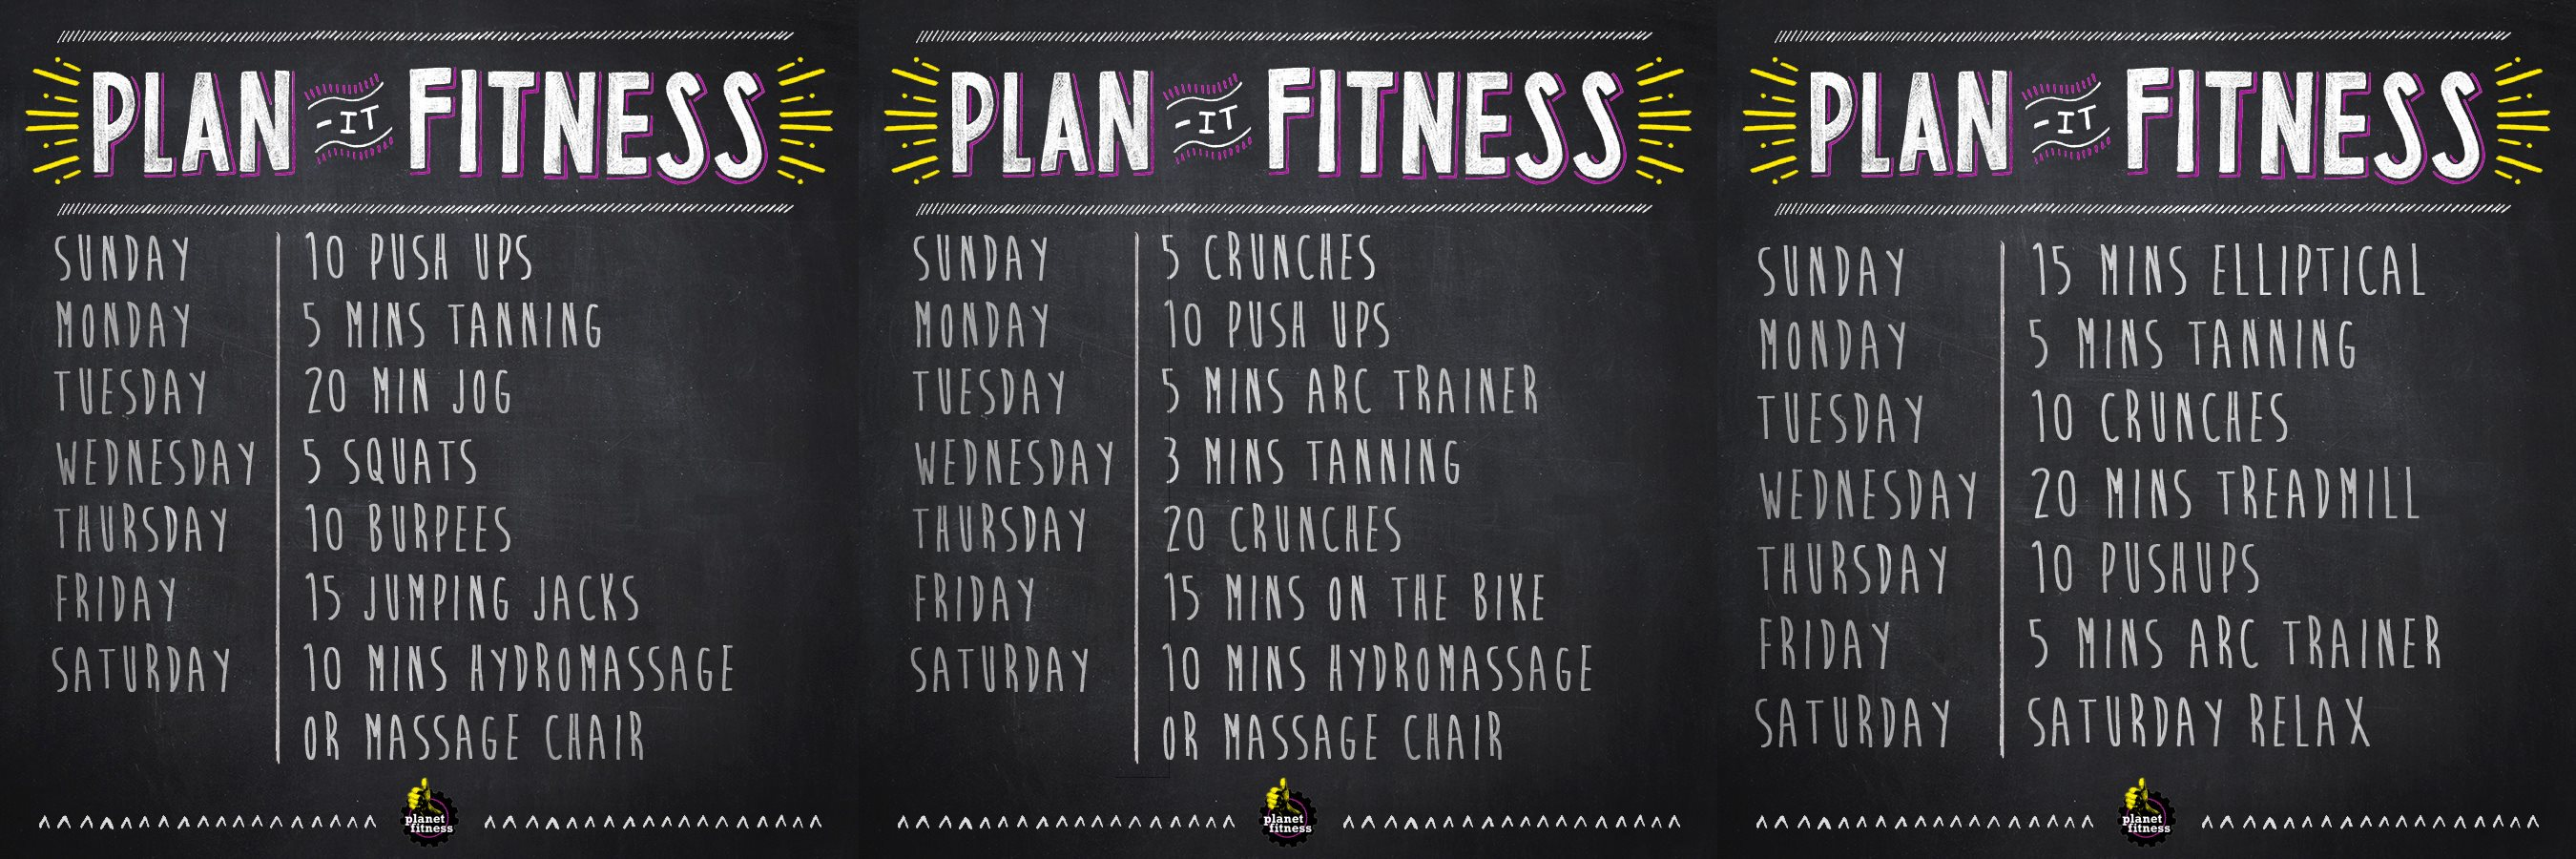 Planet Fitness Workout Plan For Men Rubik